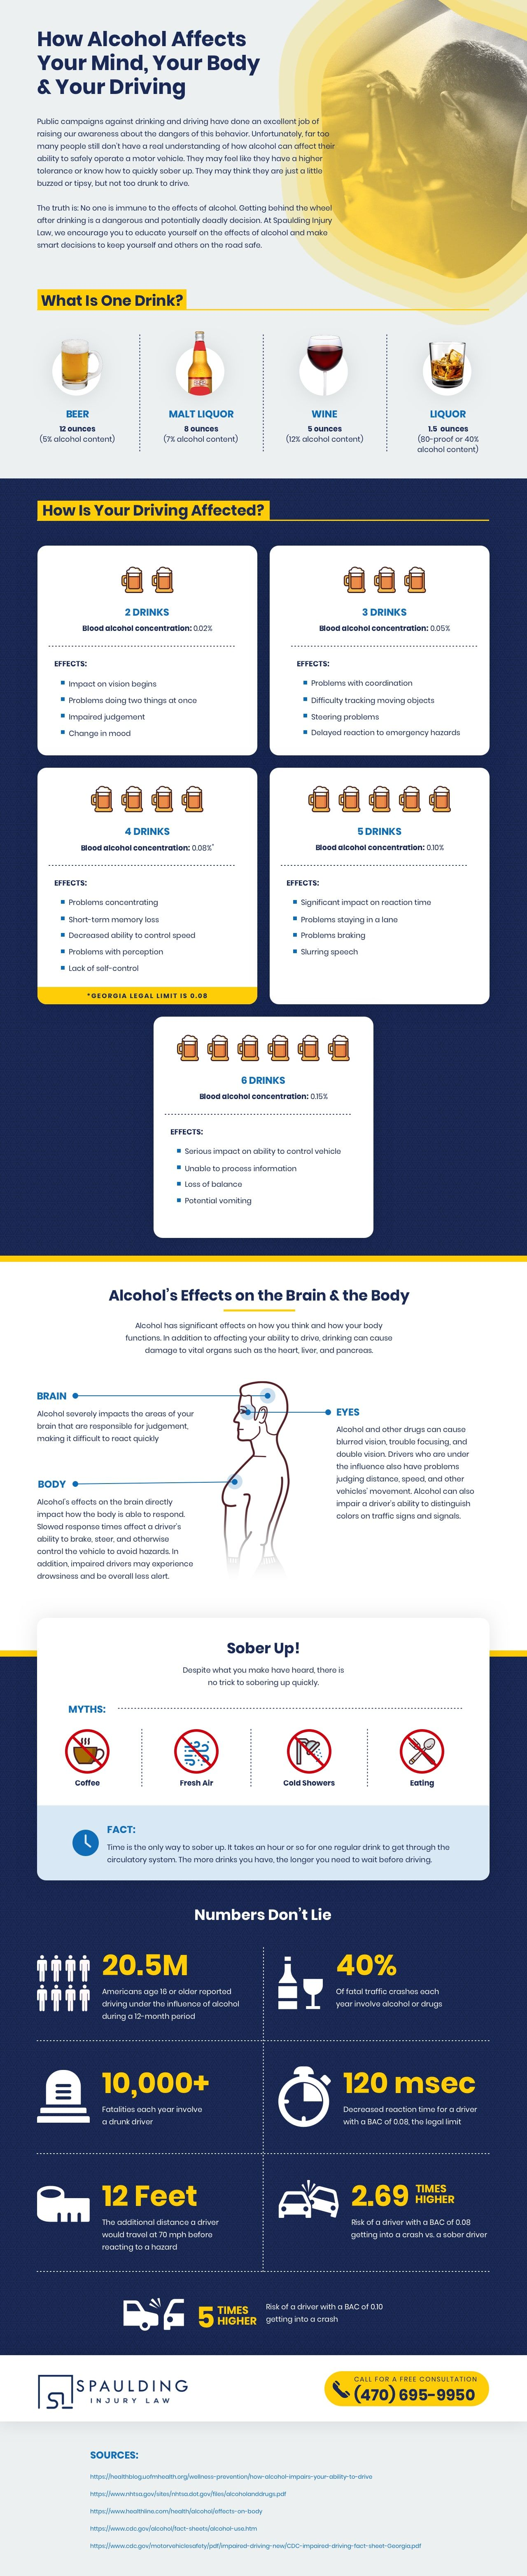 How Alcohol Affects Your Mind And Body Infographic - Spaulding Injury Law